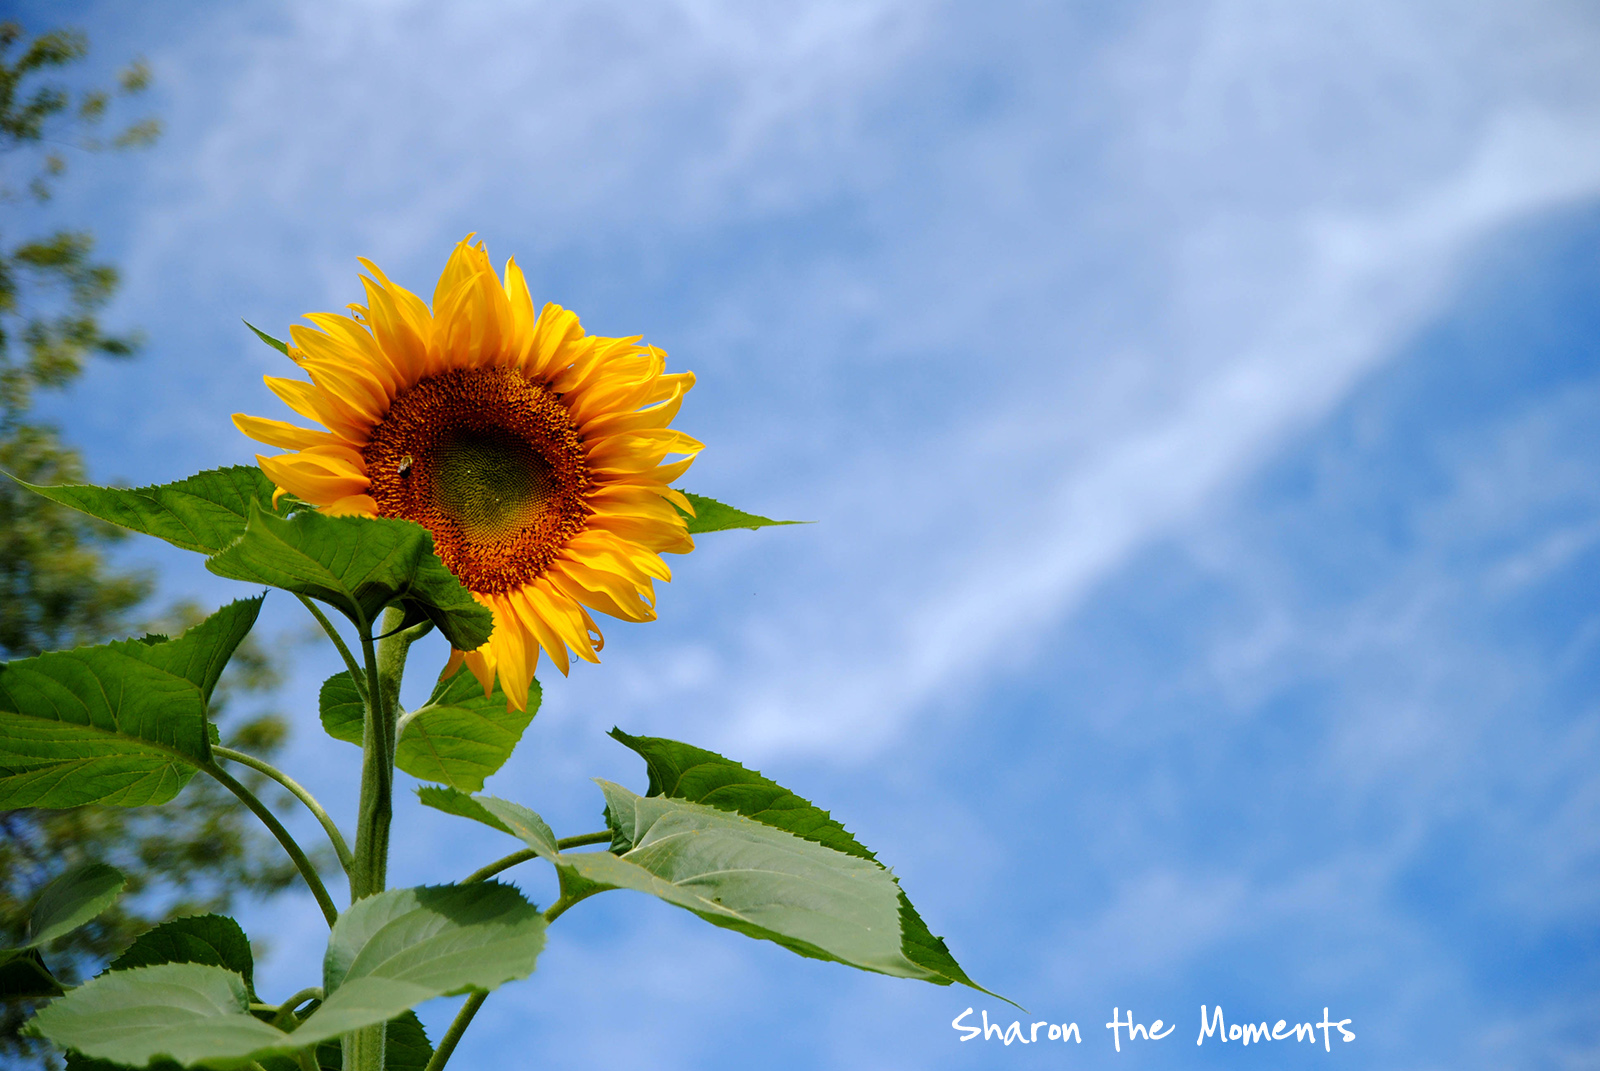 Favorite Photo Friday Summer Sunflower|Sharon the Moments blog